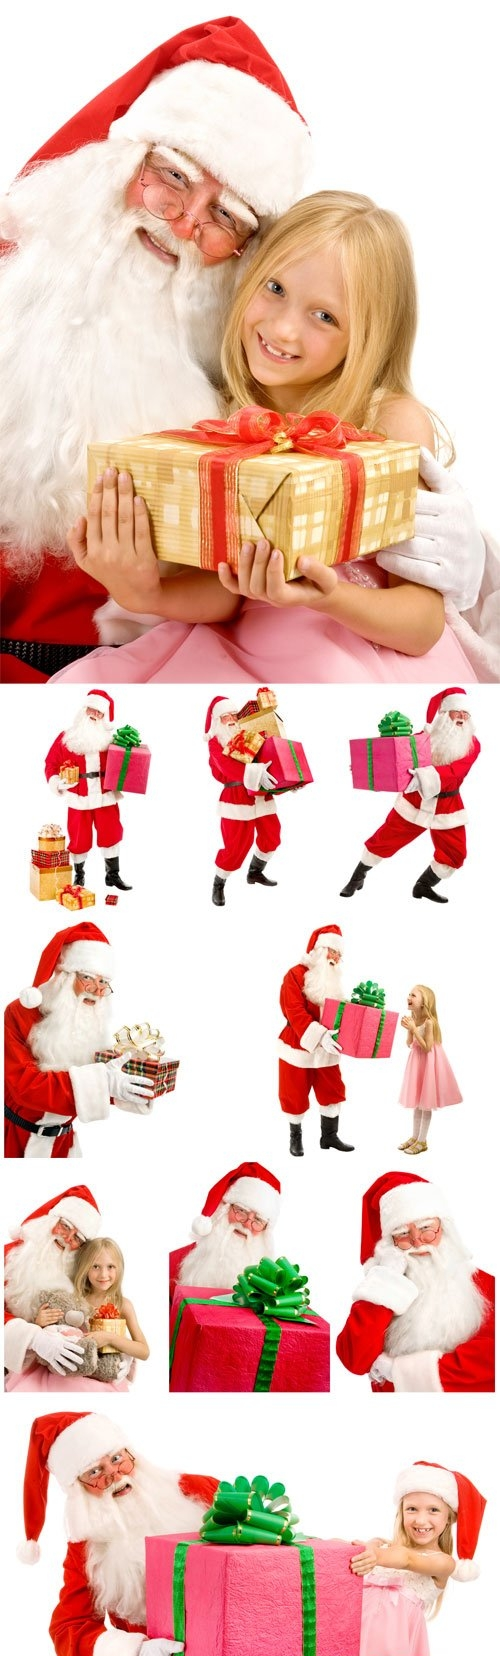 New Year and Christmas stock photos - 33